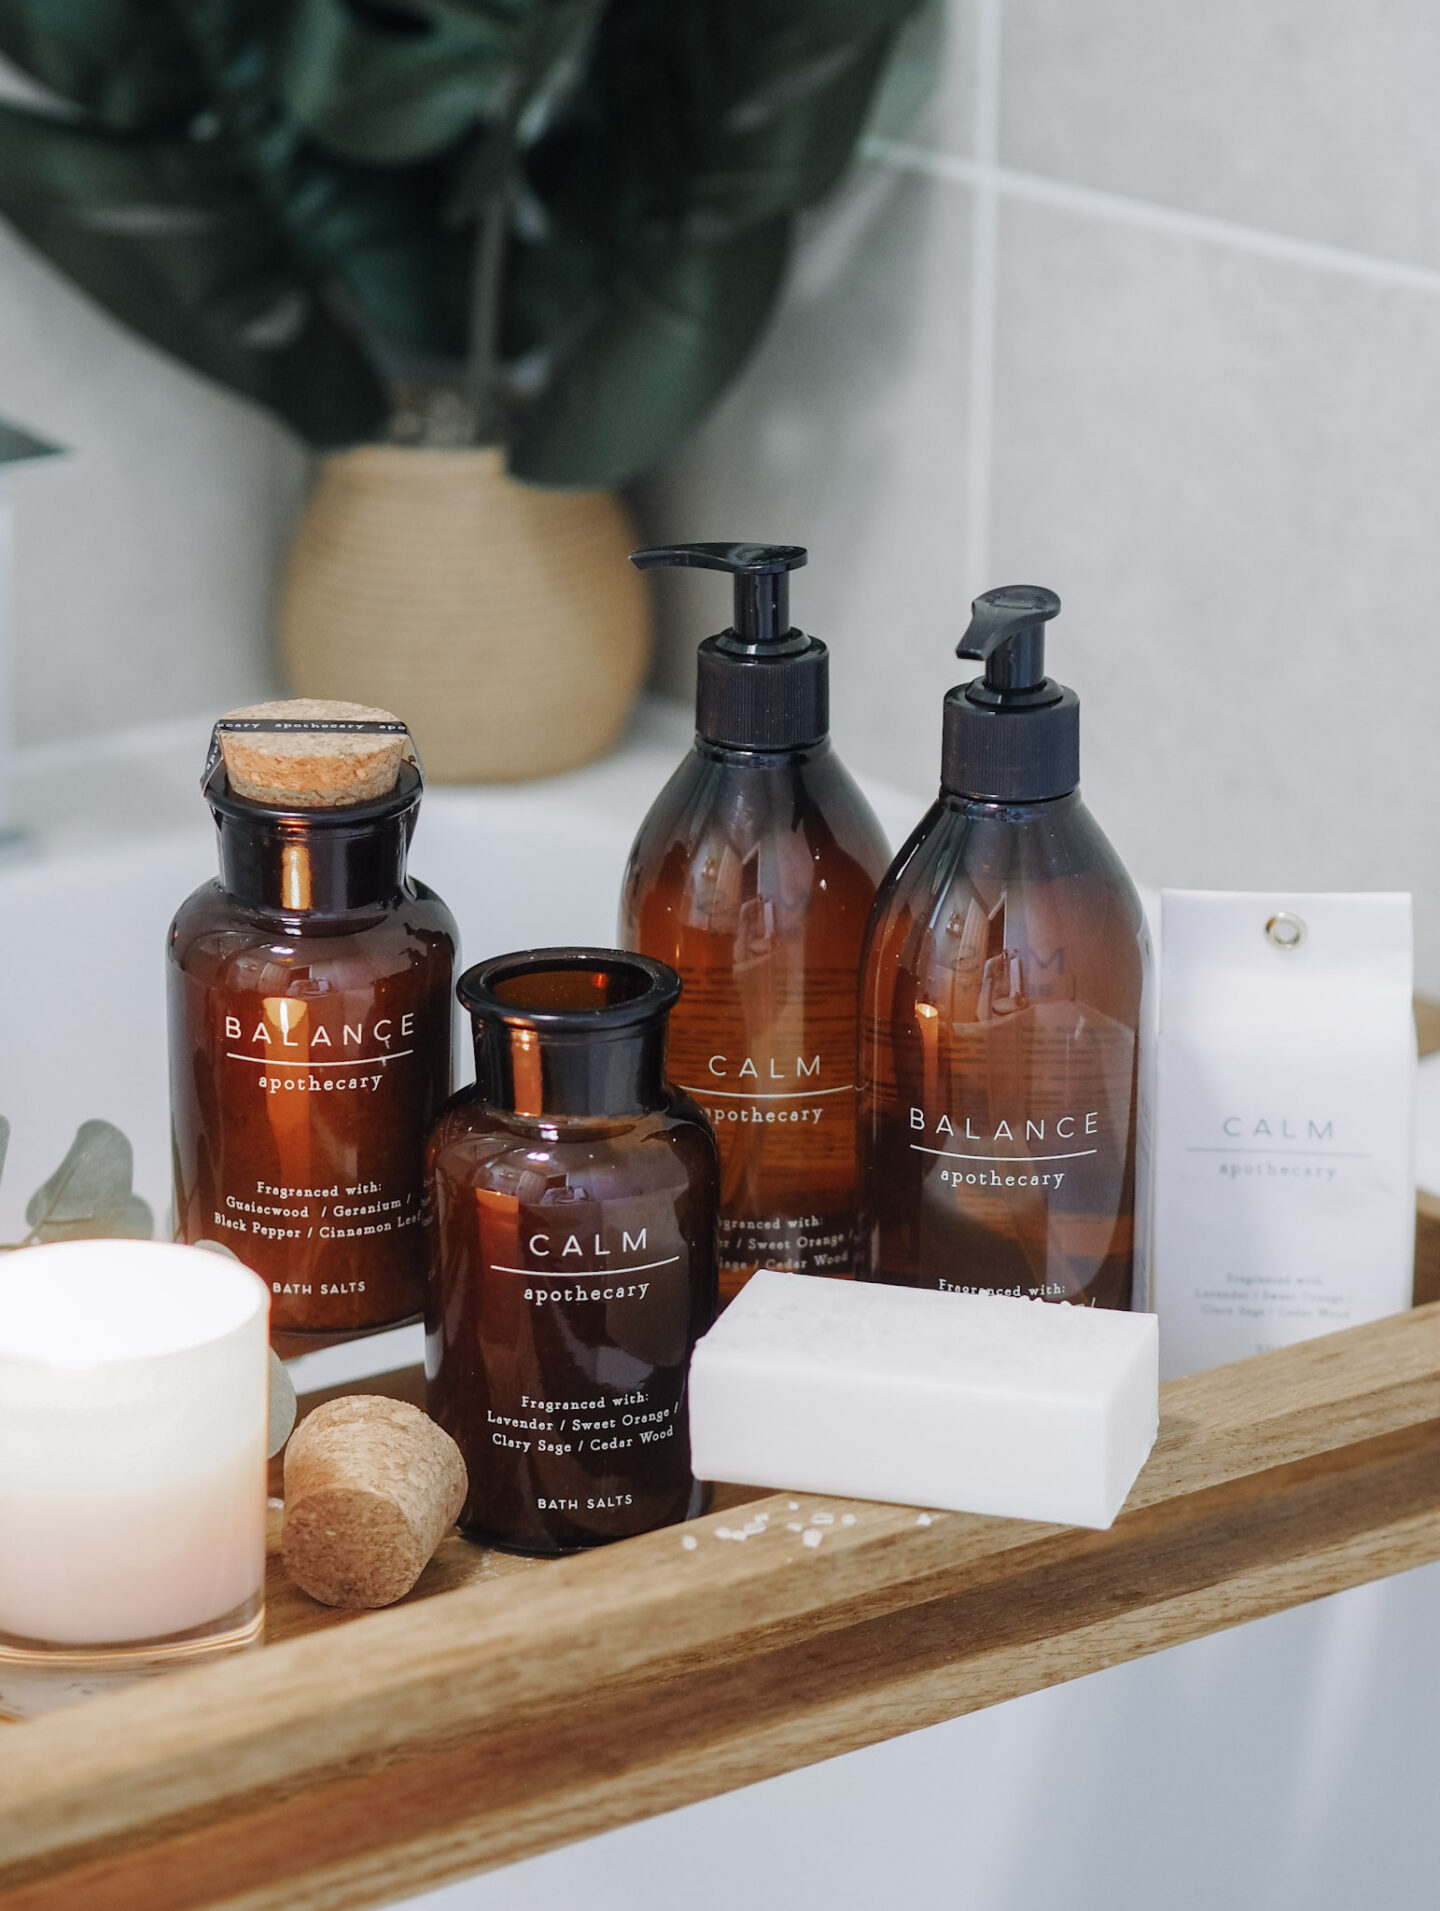 Marks & Spencer Apothecary: Super Affordable Bath & Body Range